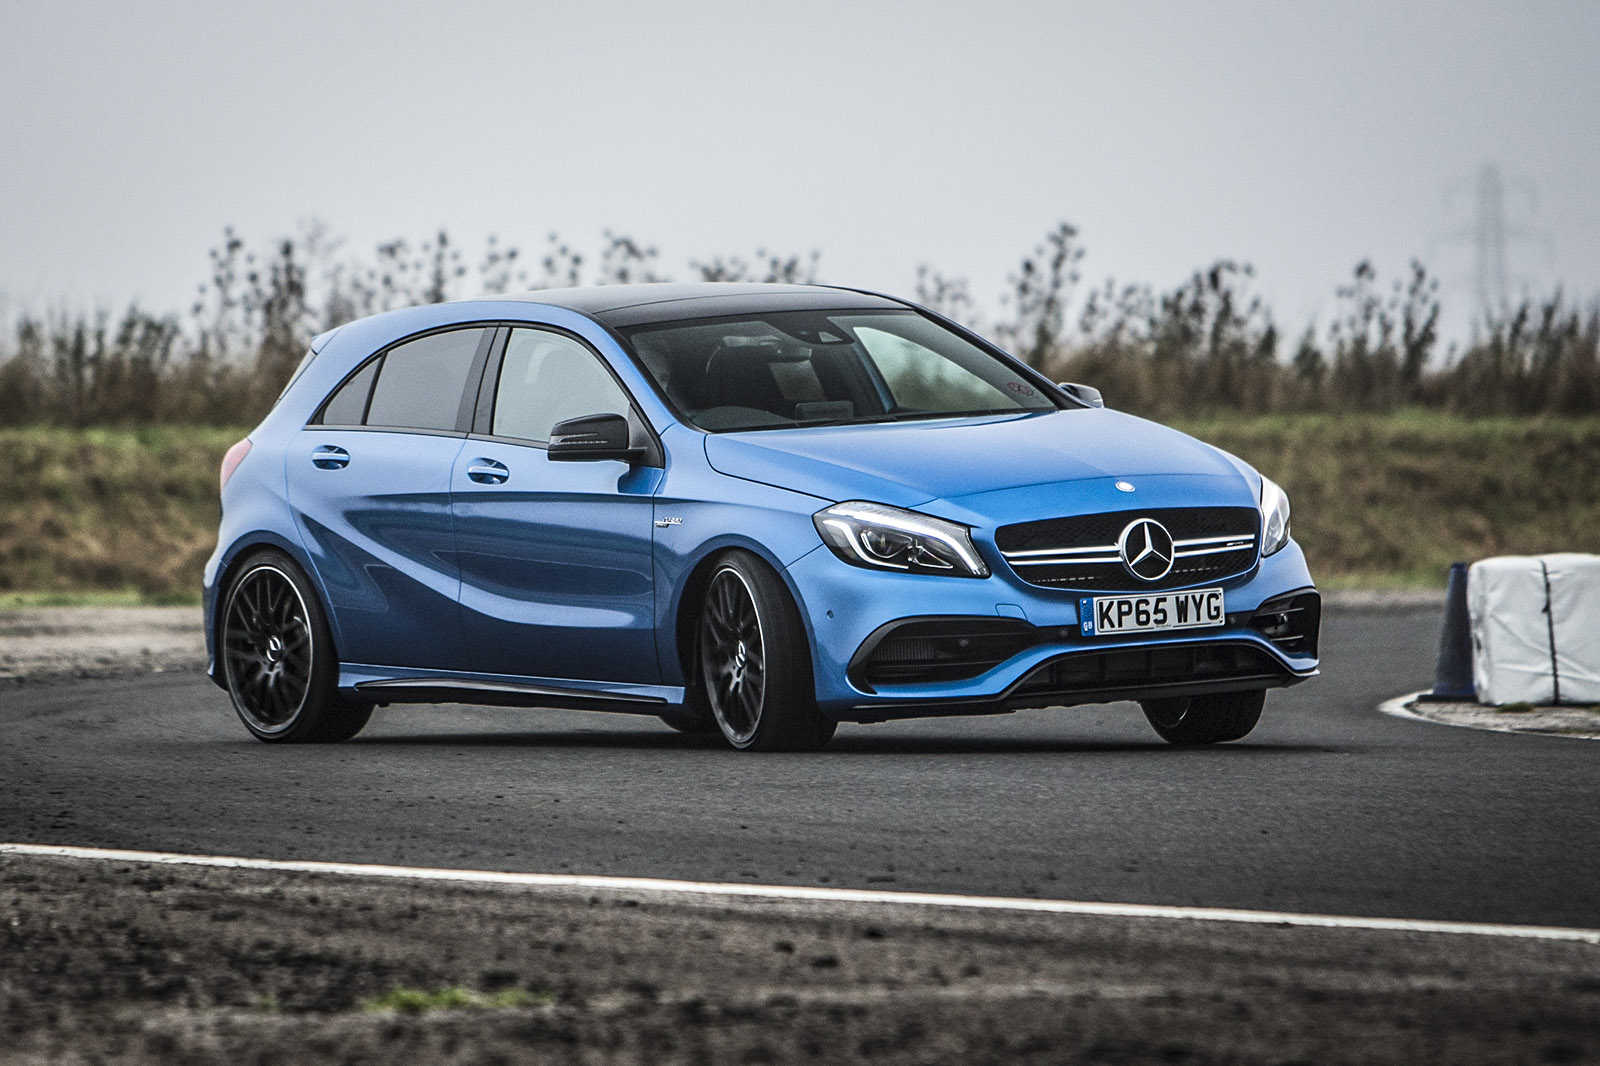 Mercedes a45 amg price in india cars inspiration gallery for Mercedes benz a45 price